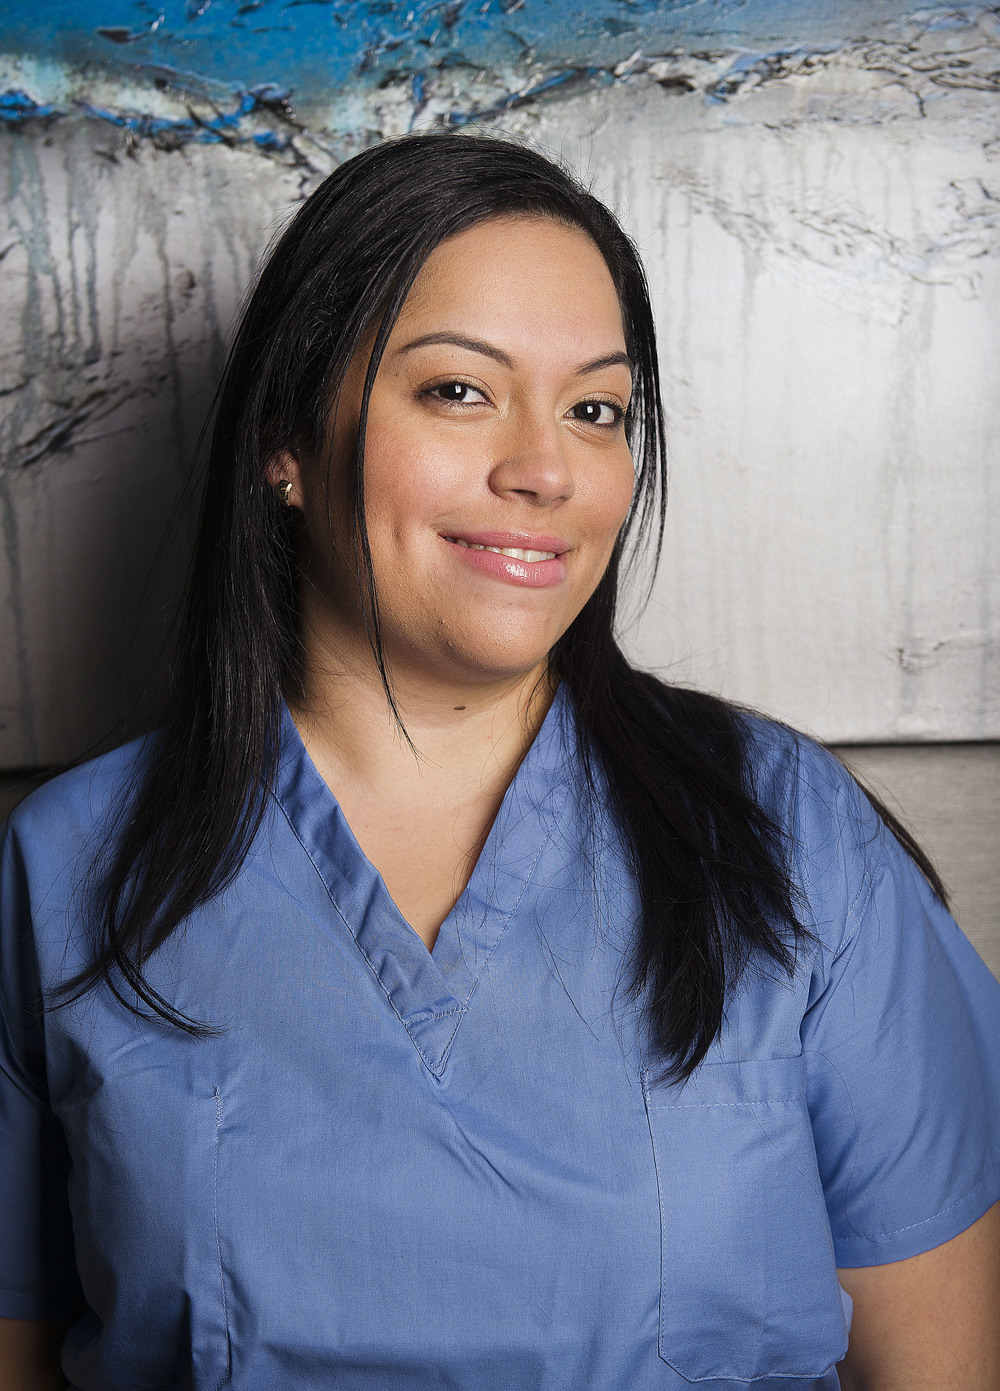 Jazmin Rodriguez   Dental Assistant   I think we're able to help people achieve a healthier mouth. Because we are kind and thoughtful during procedures, we make the experience positive. It's exciting to see patients who come in tentatively and leave eager to make their next appointment. When we are able to treat someone who has neglected dental care for some time, because of fear, monetary reasons, or other issues, it is rewarding to see them with restored gums, sound teeth, an improved bite, and a beautiful smile. I have a particularly vivid memory of a woman who told us that she is still learning to use the new smile we gave her after 50 years of not smiling, because she was ashamed of her teeth.